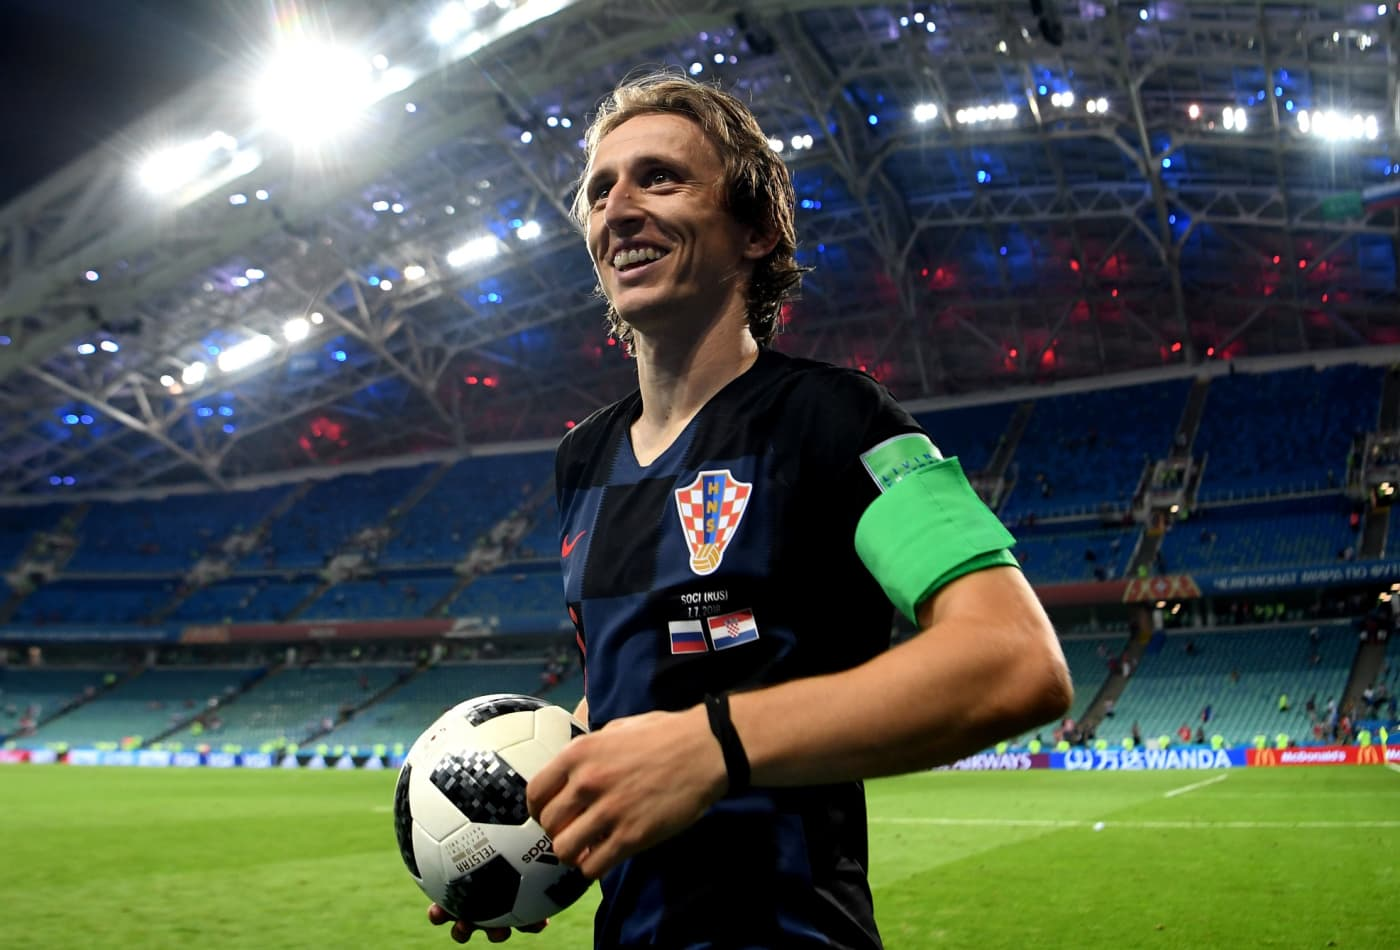 lowest price 1618a 0d85d Luka Modric wins the Ballon d'Or, beating out Cristiano Ronaldo